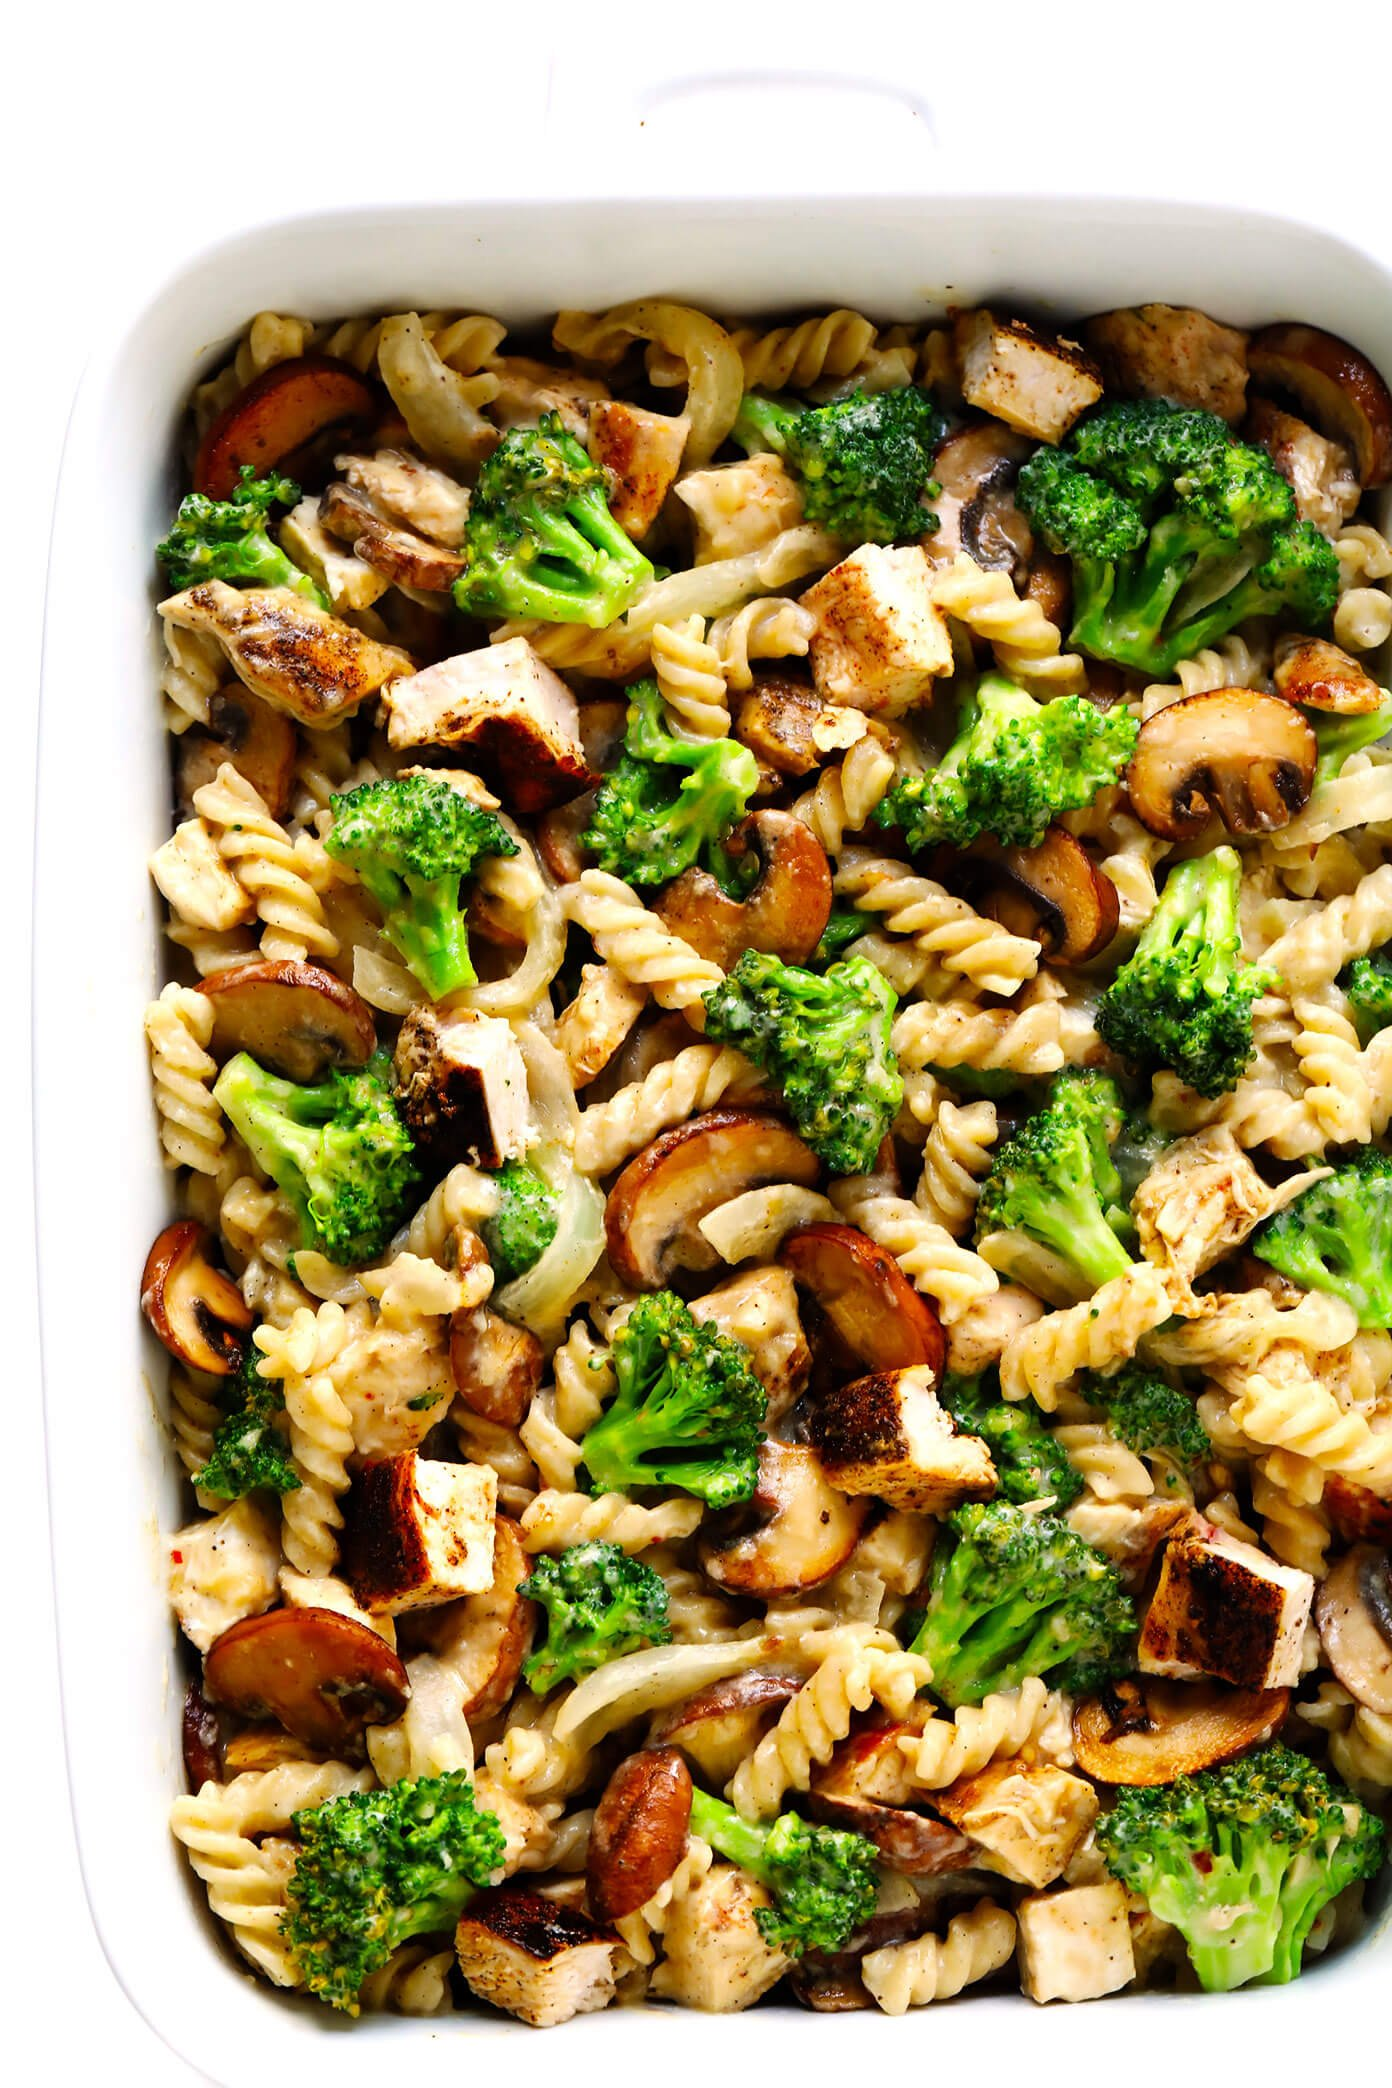 Broccoli Chicken Casserole Recipe